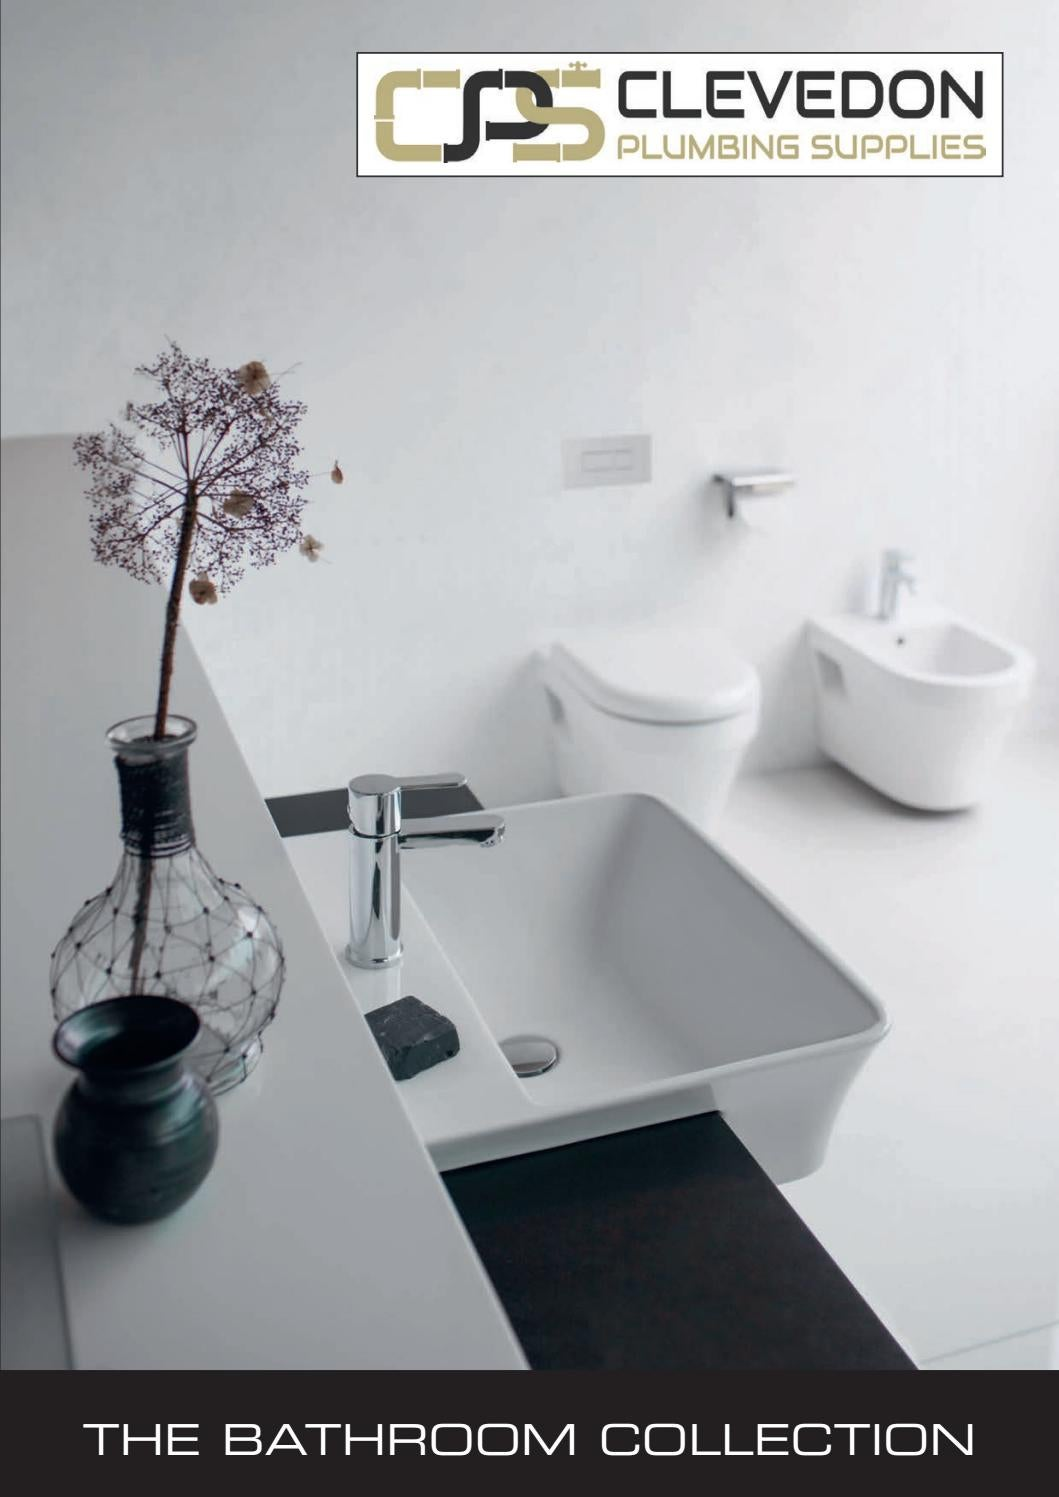 Clevedon Plumbing Price Book Issue 26 Lr By New Vario 110 Esp Cbs Grande White Brebes Supplies Issuu